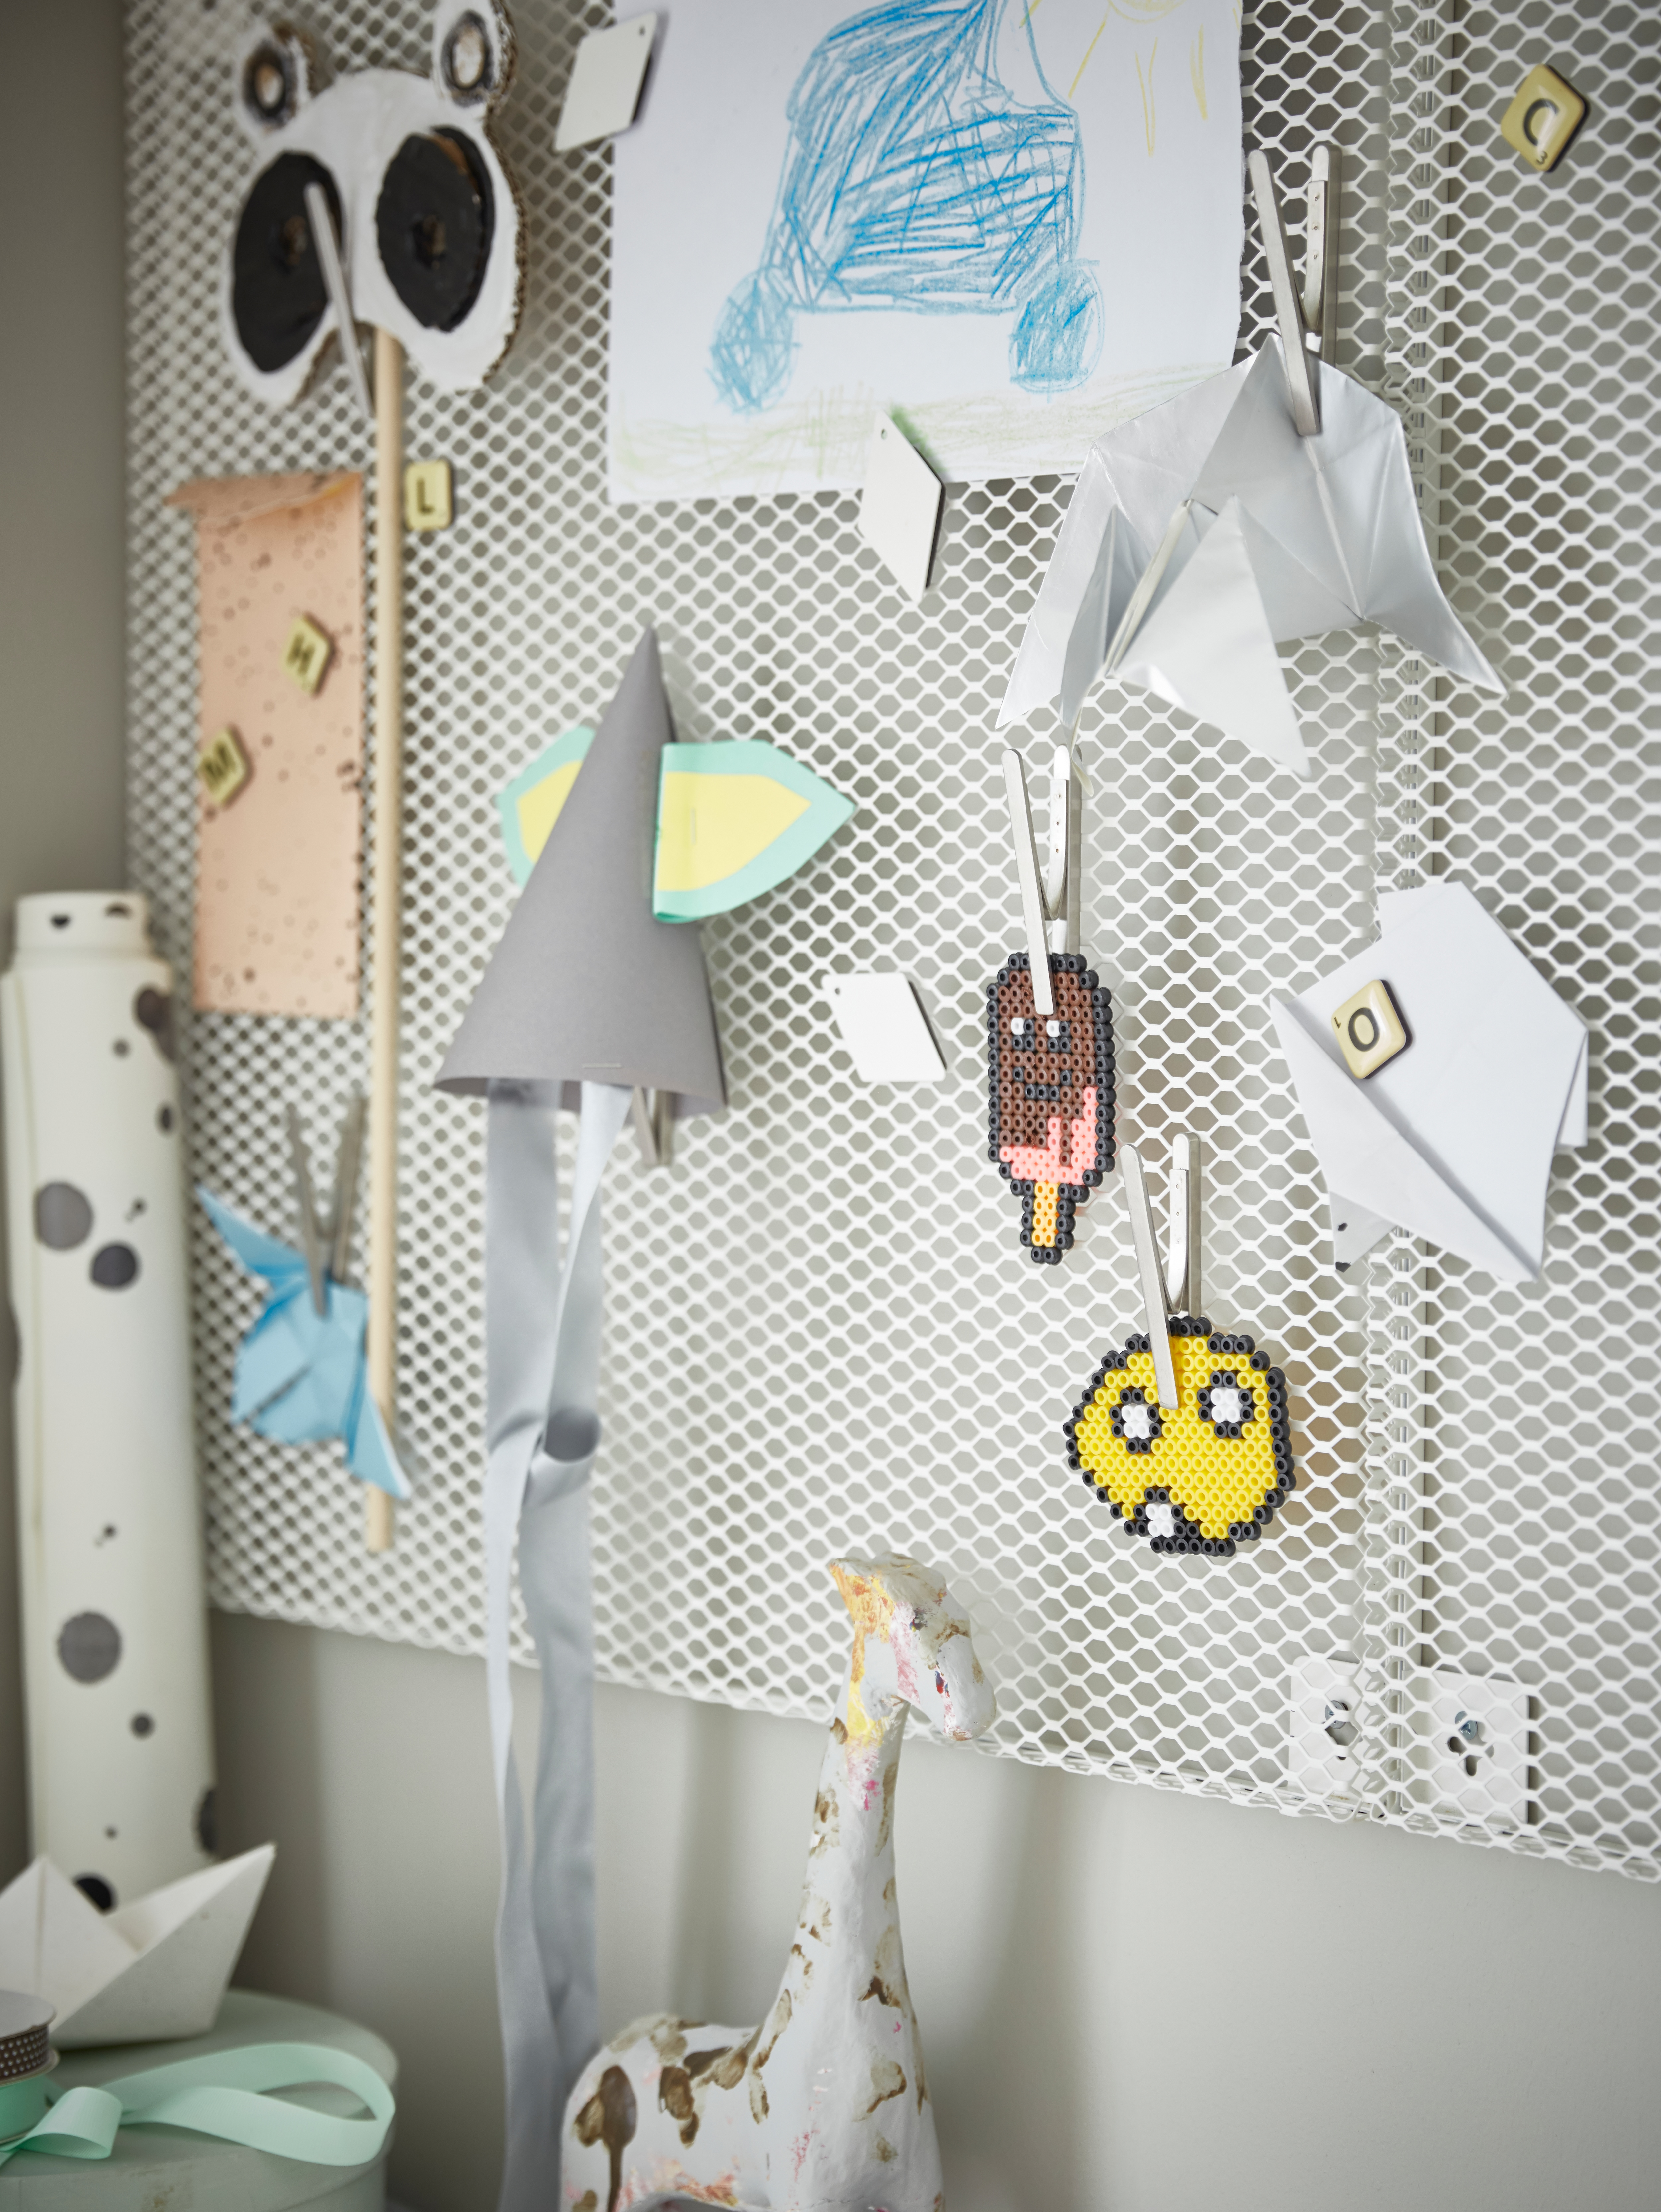 A white SÖDERGARN memo board with magnets is mounted on a wall, holding children's crafts and drawings. Some are on clips.